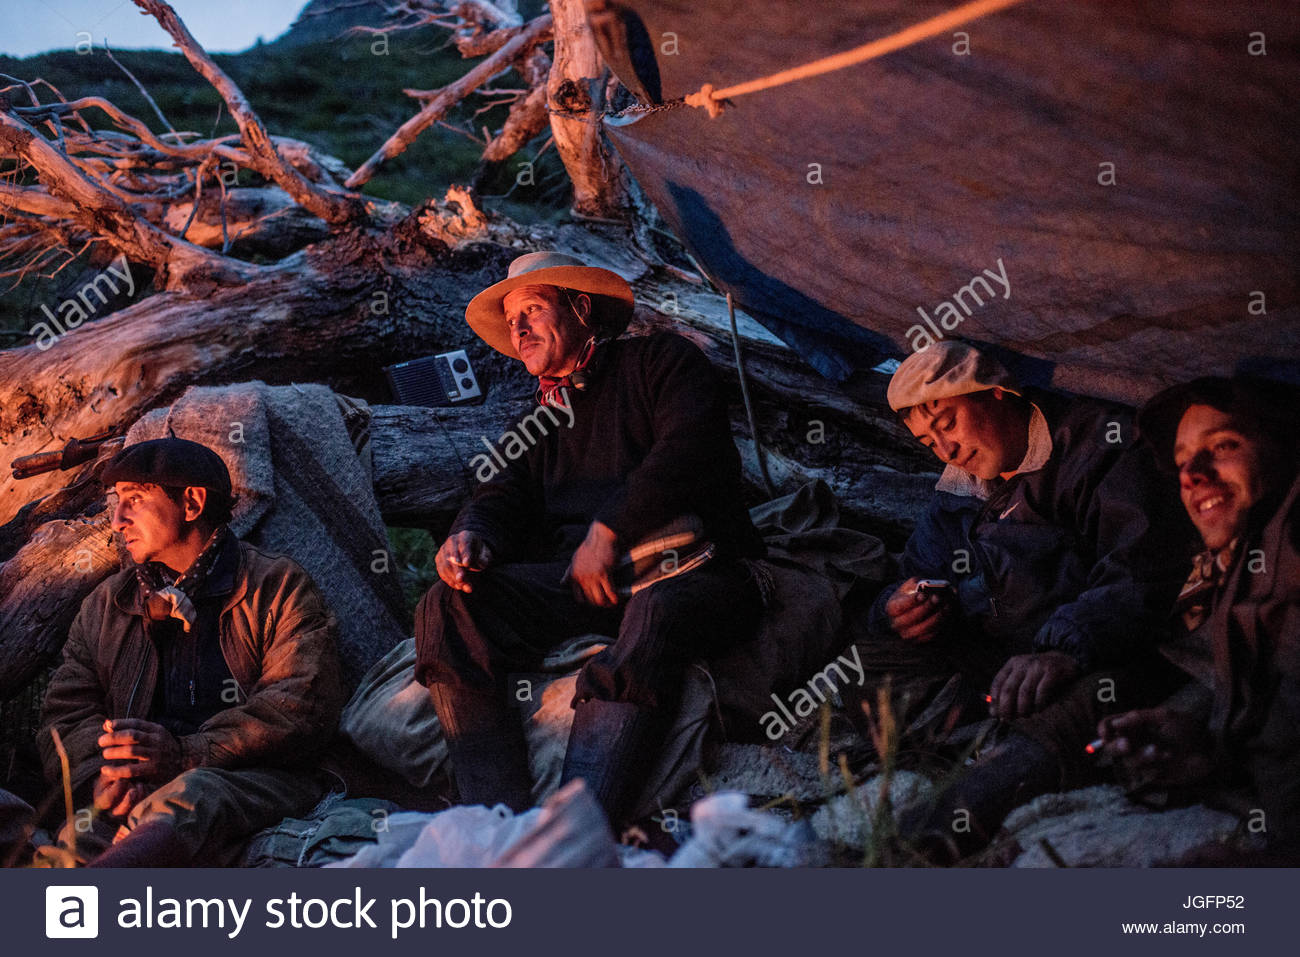 Gauchos, or cowboys, gather around a fire to eat sandwiches and meat and drink wine before going to sleep. - Stock Image